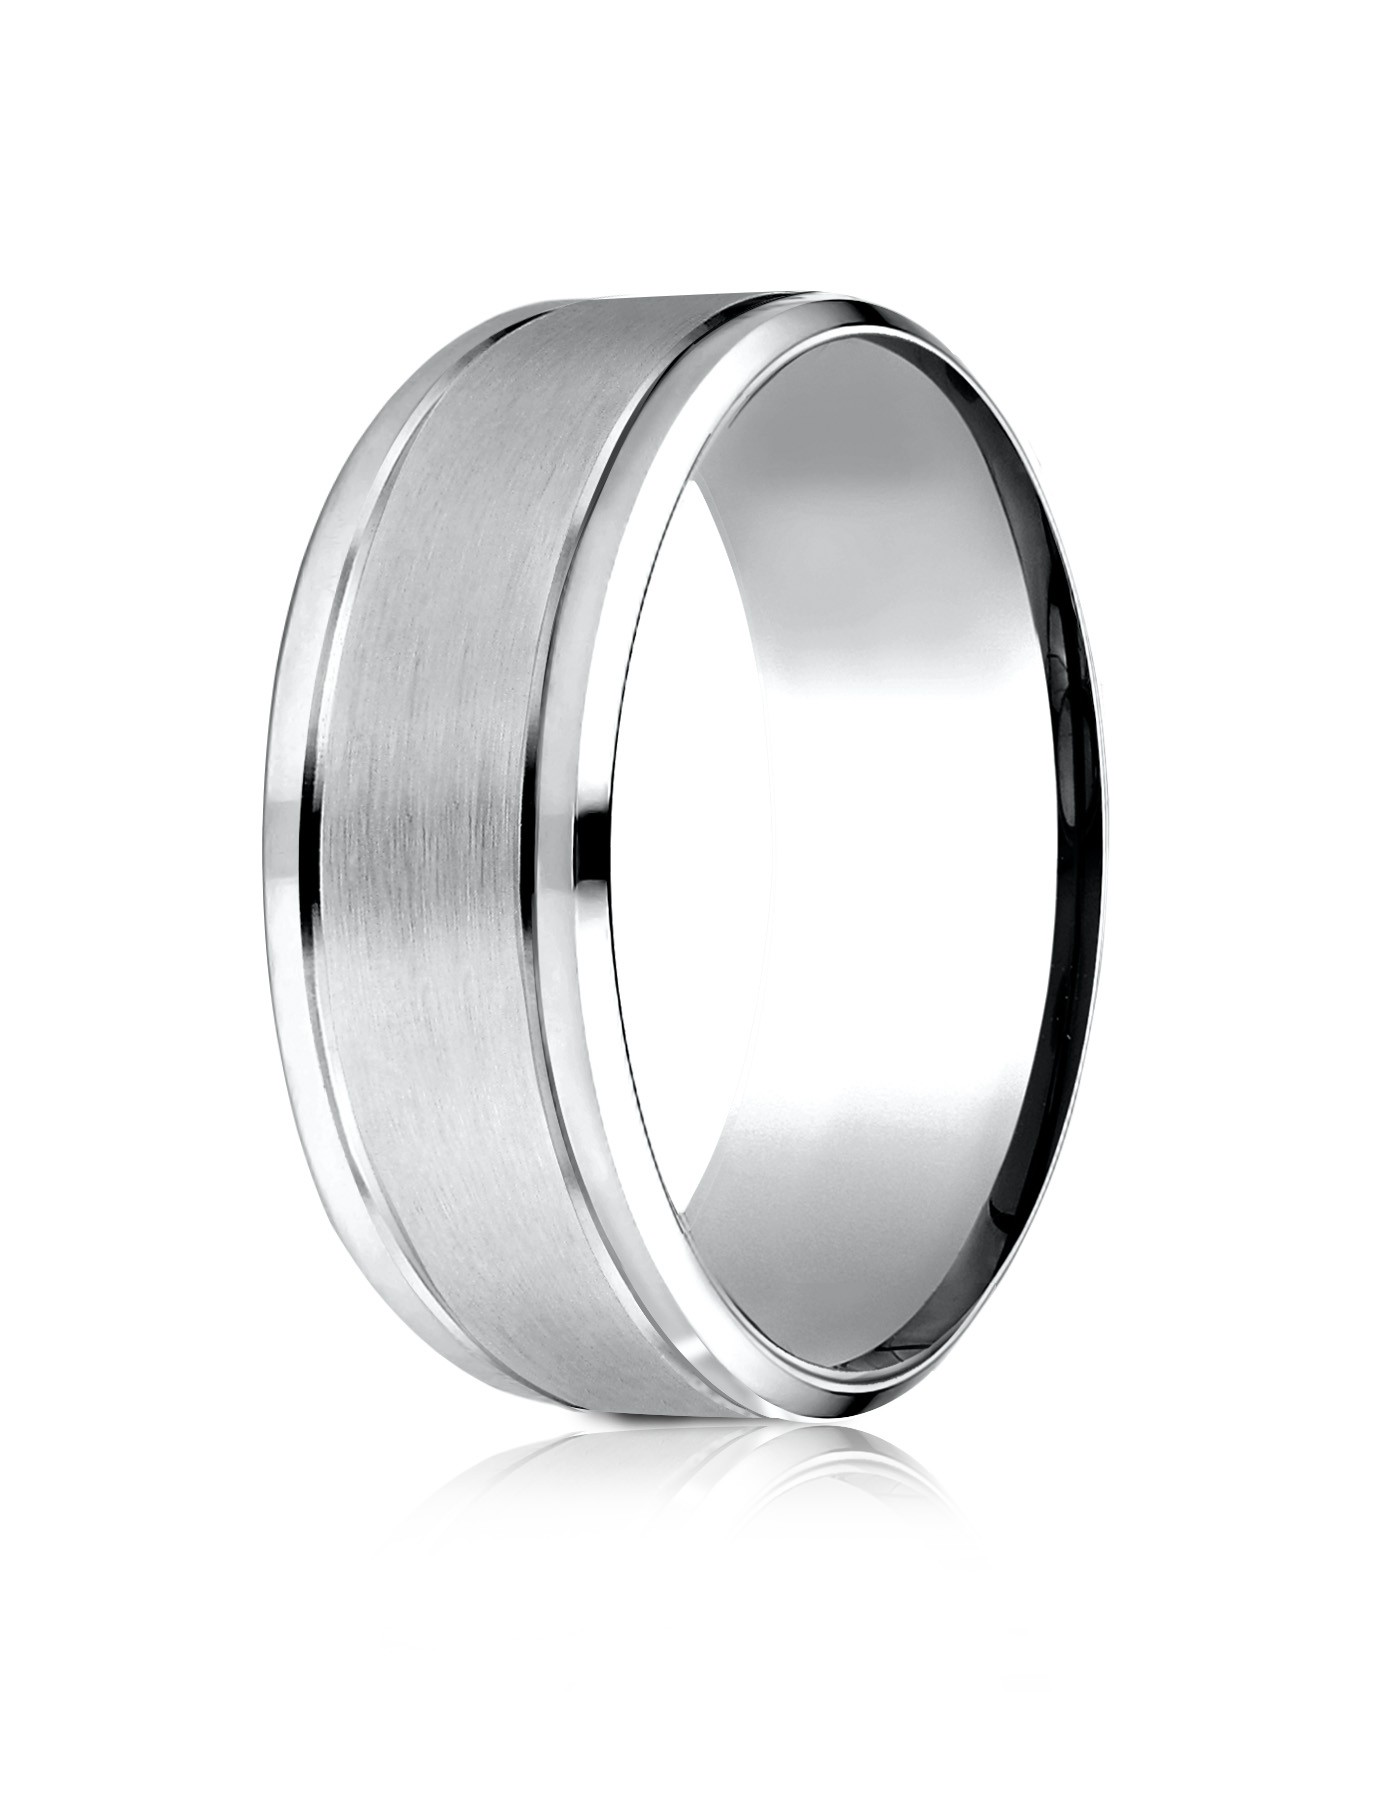 14 Karat White Gold 8mm Comfort-fit Drop Bevel Satin Finish Design Band